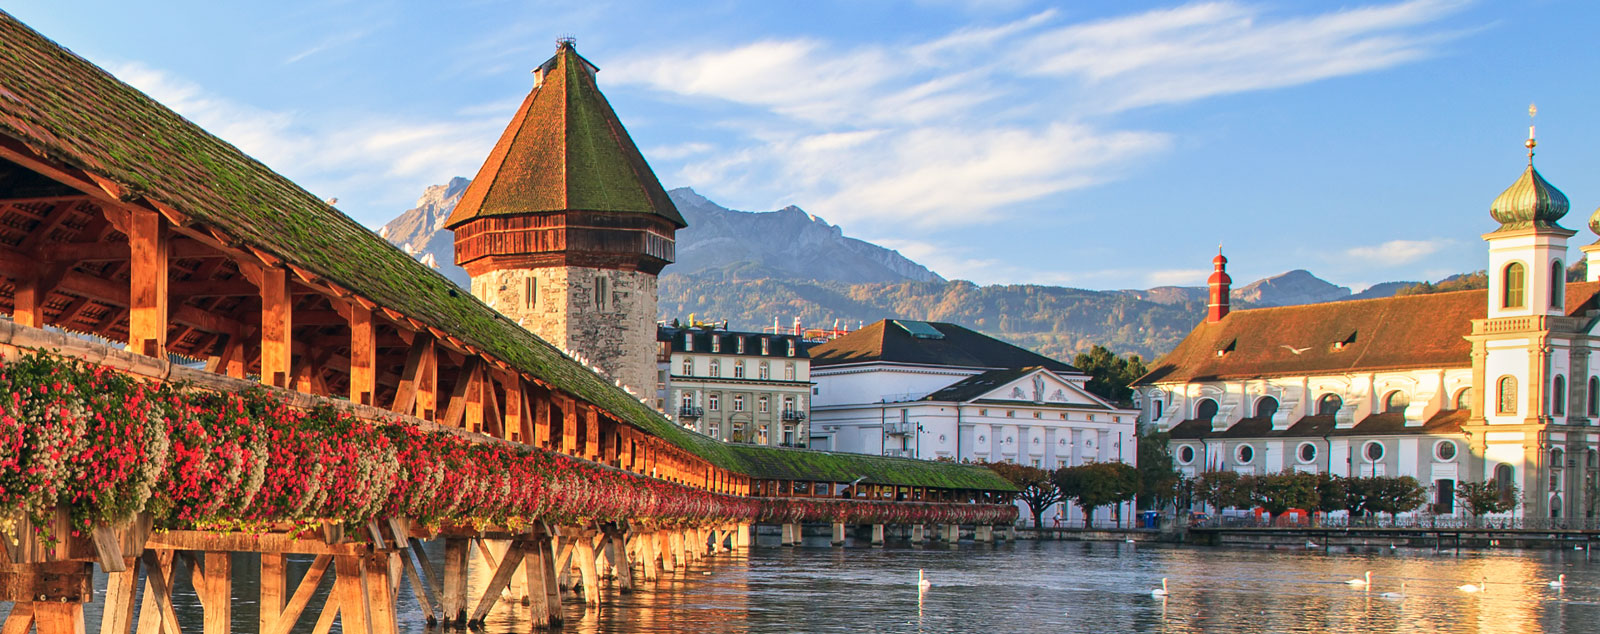 A medieval roofed bridge covered in flowers crosses a river leading to a tall stone tower in Lucerne